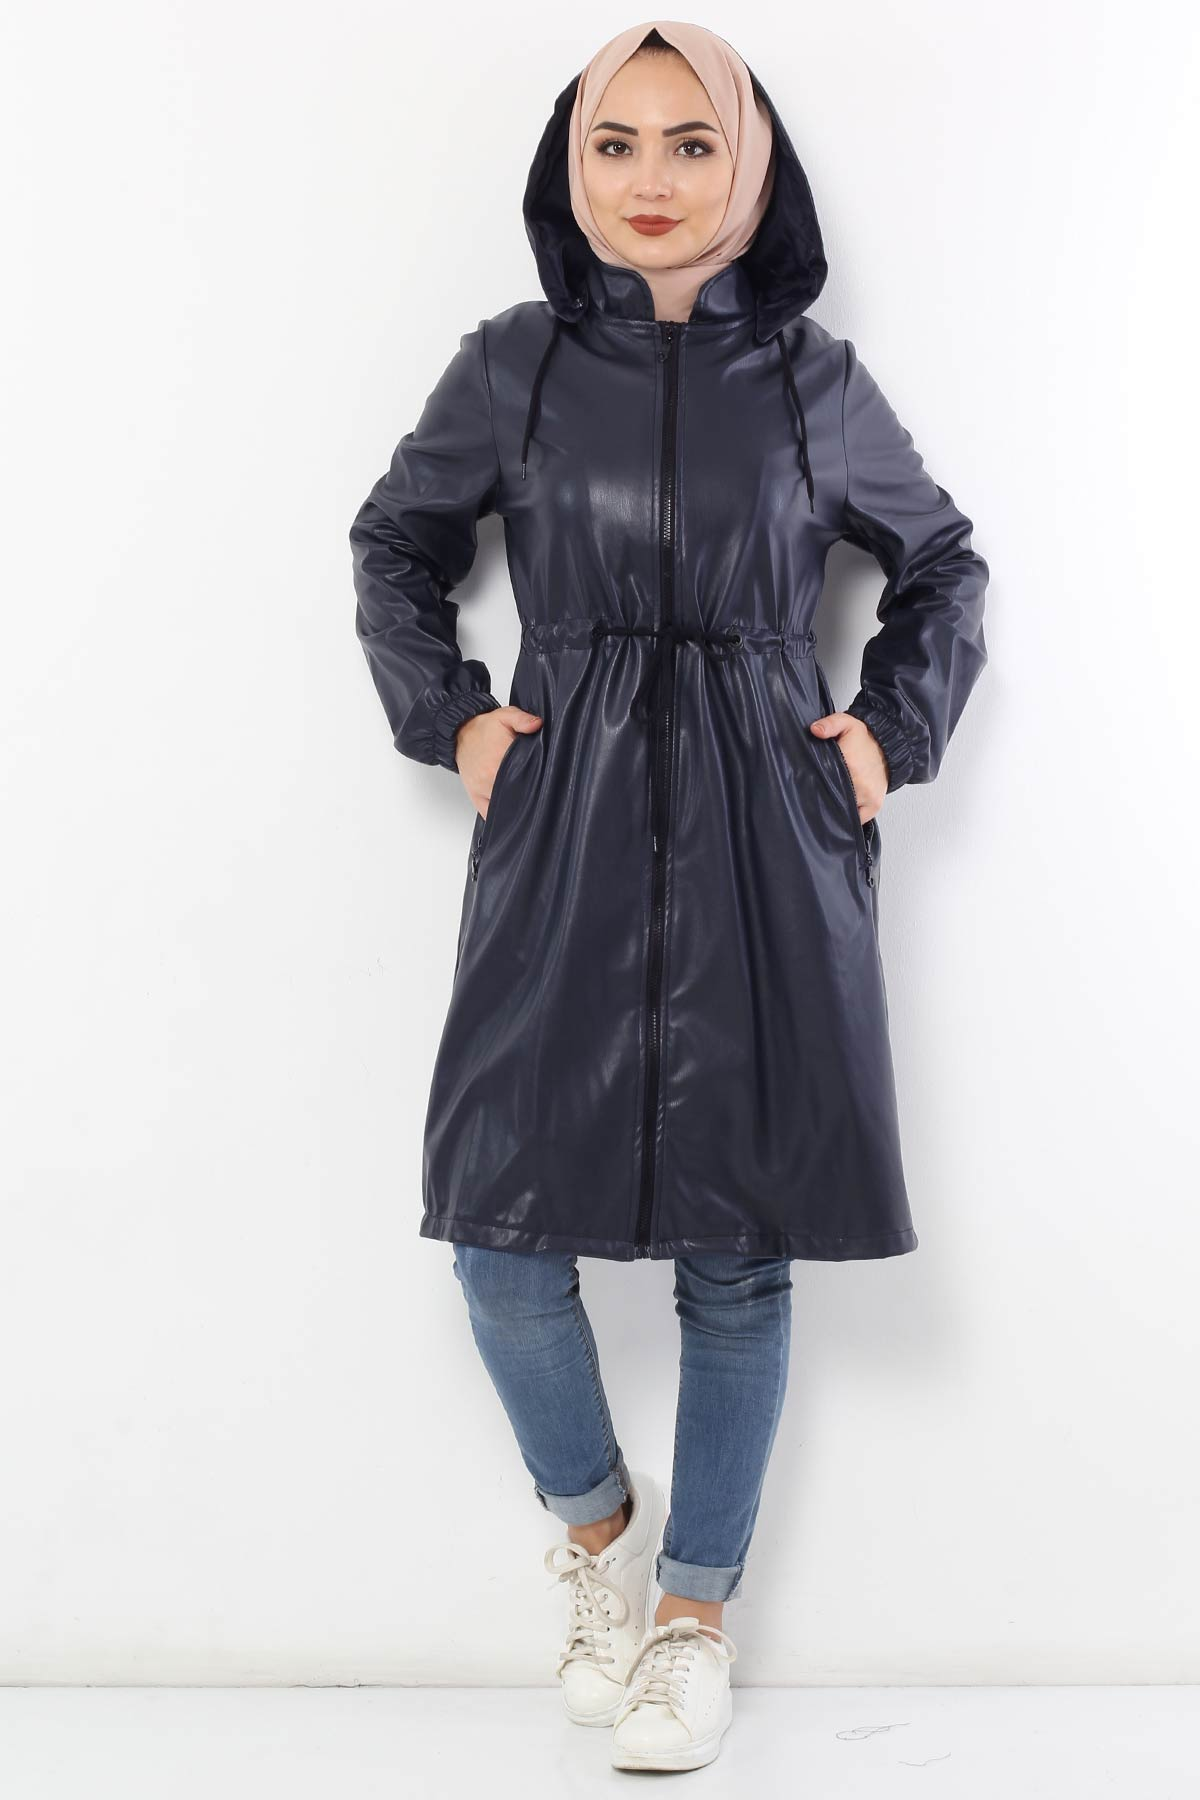 Waist Laced Leather Cape TSD2110 Navy Blue